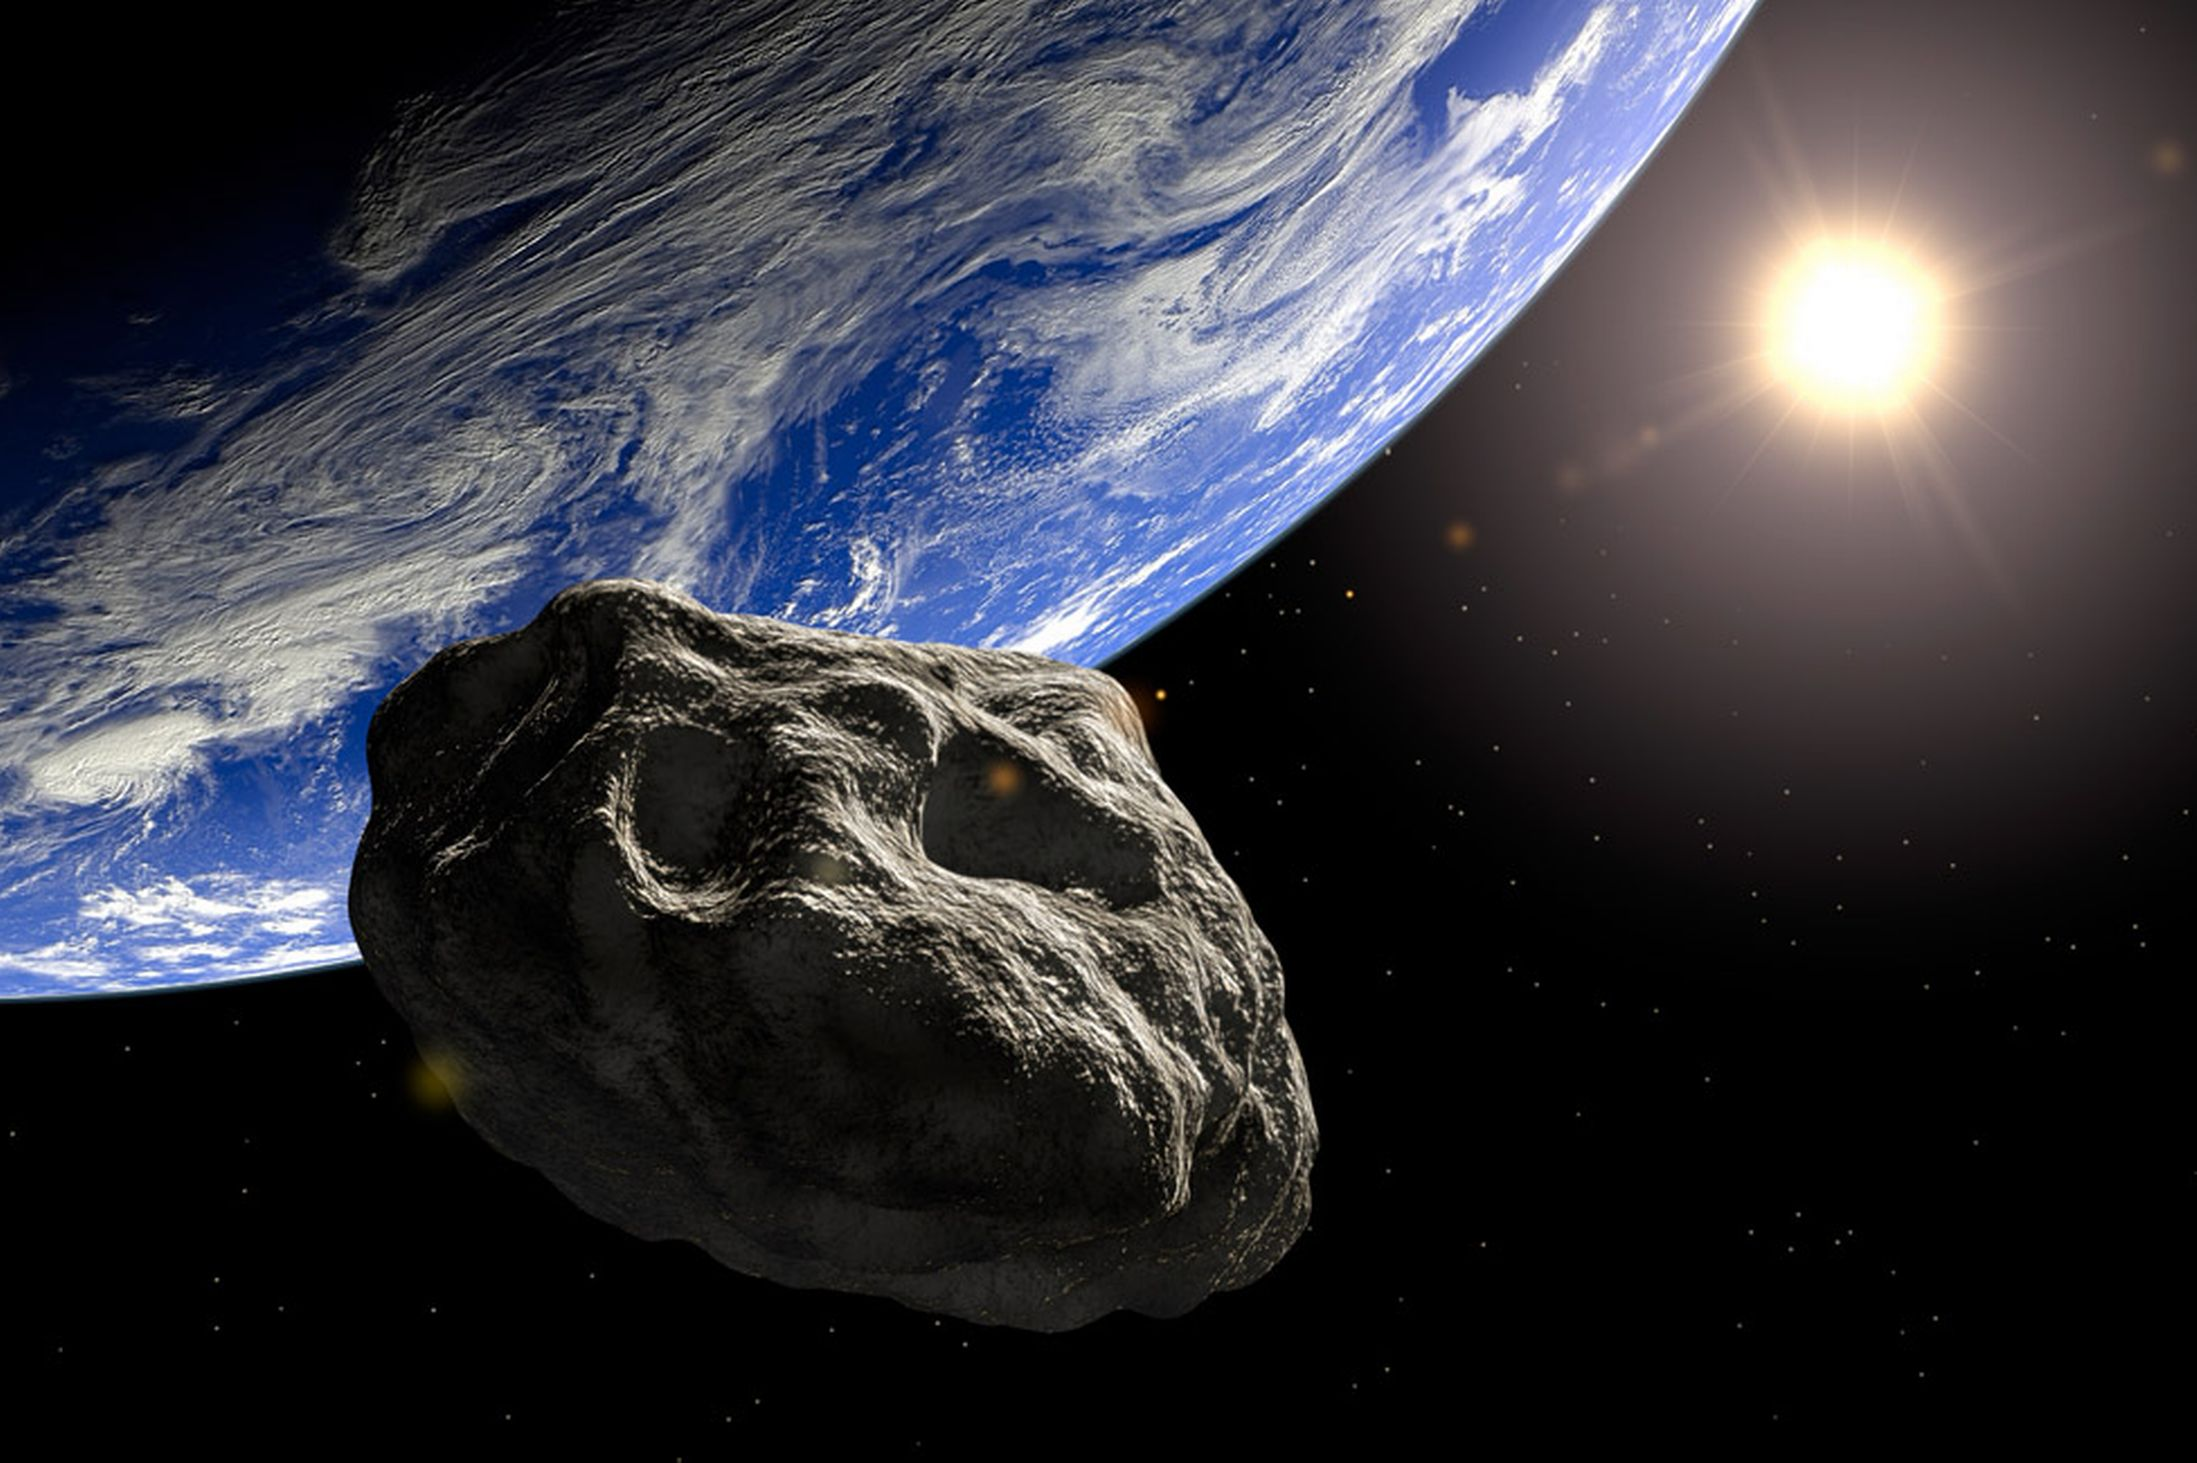 asteroid-earth-2324211.jpg